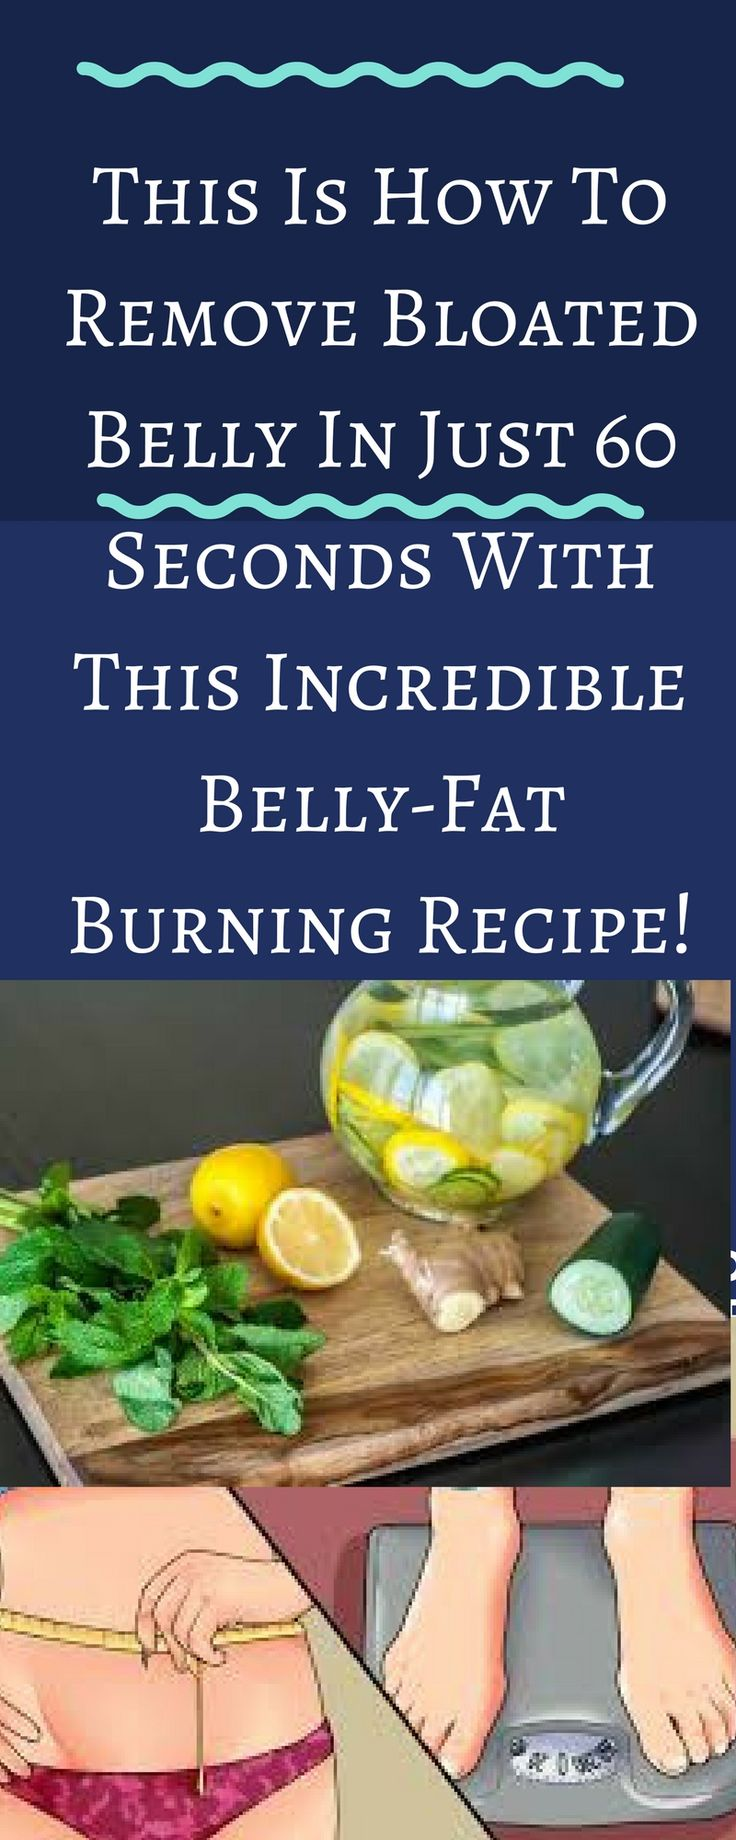 bloated-belly-just-60-seconds-incredible-belly-fat-burning-recipe/